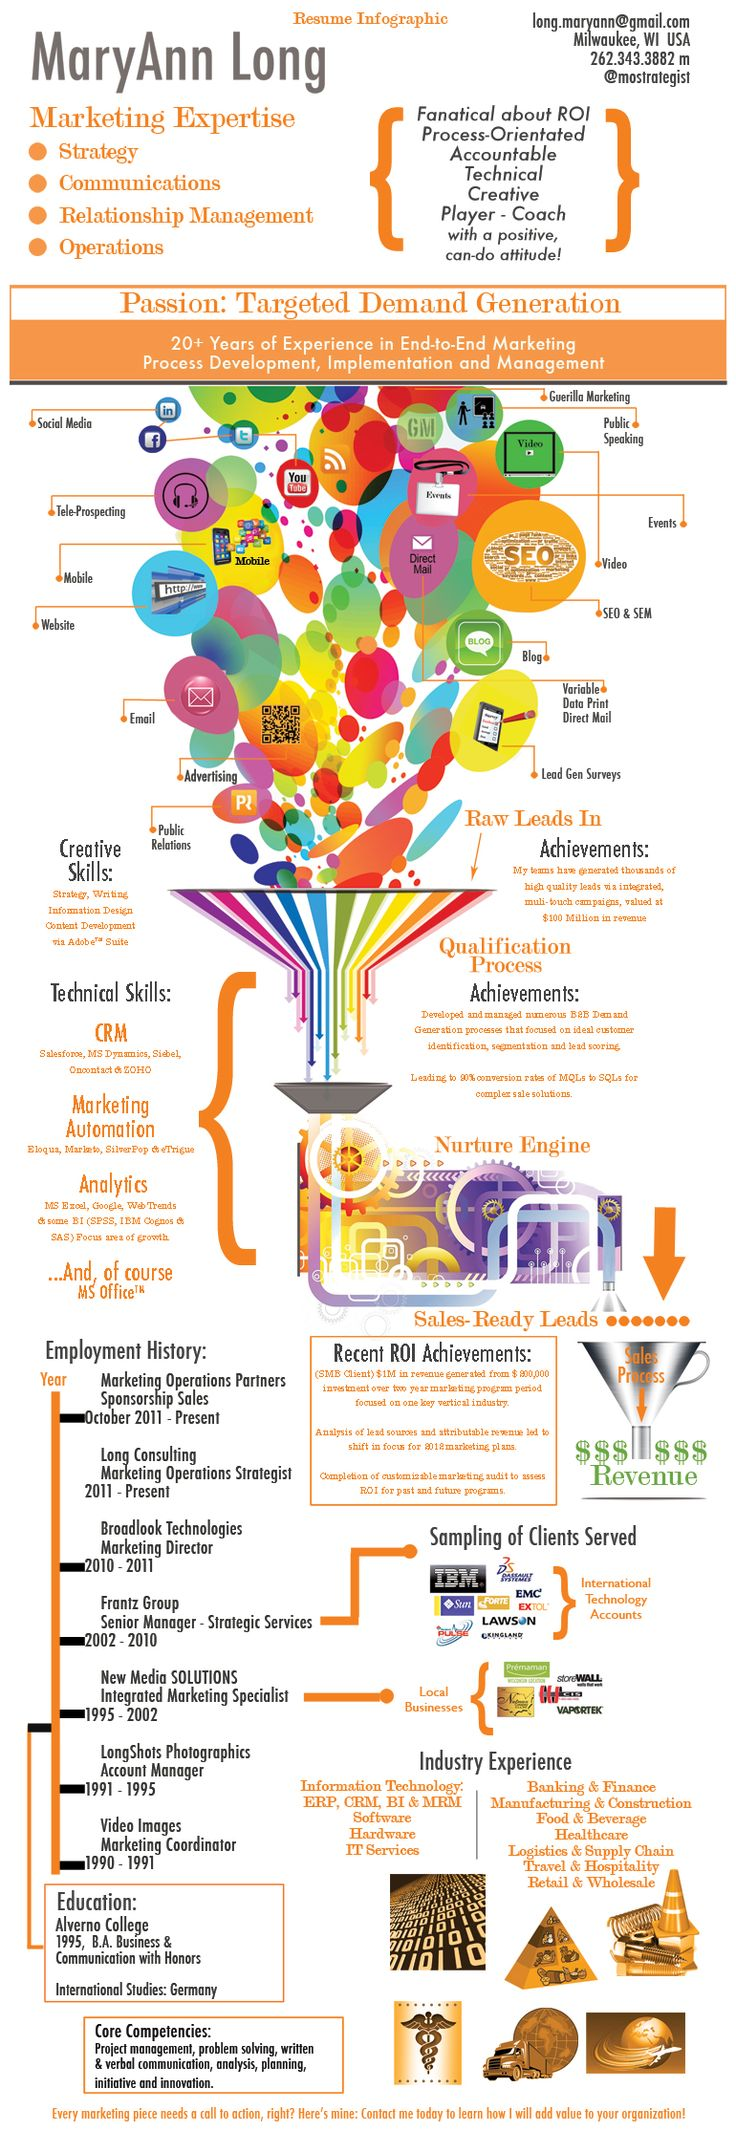 Infographic Resume - Mary Ann Long - Infographic design